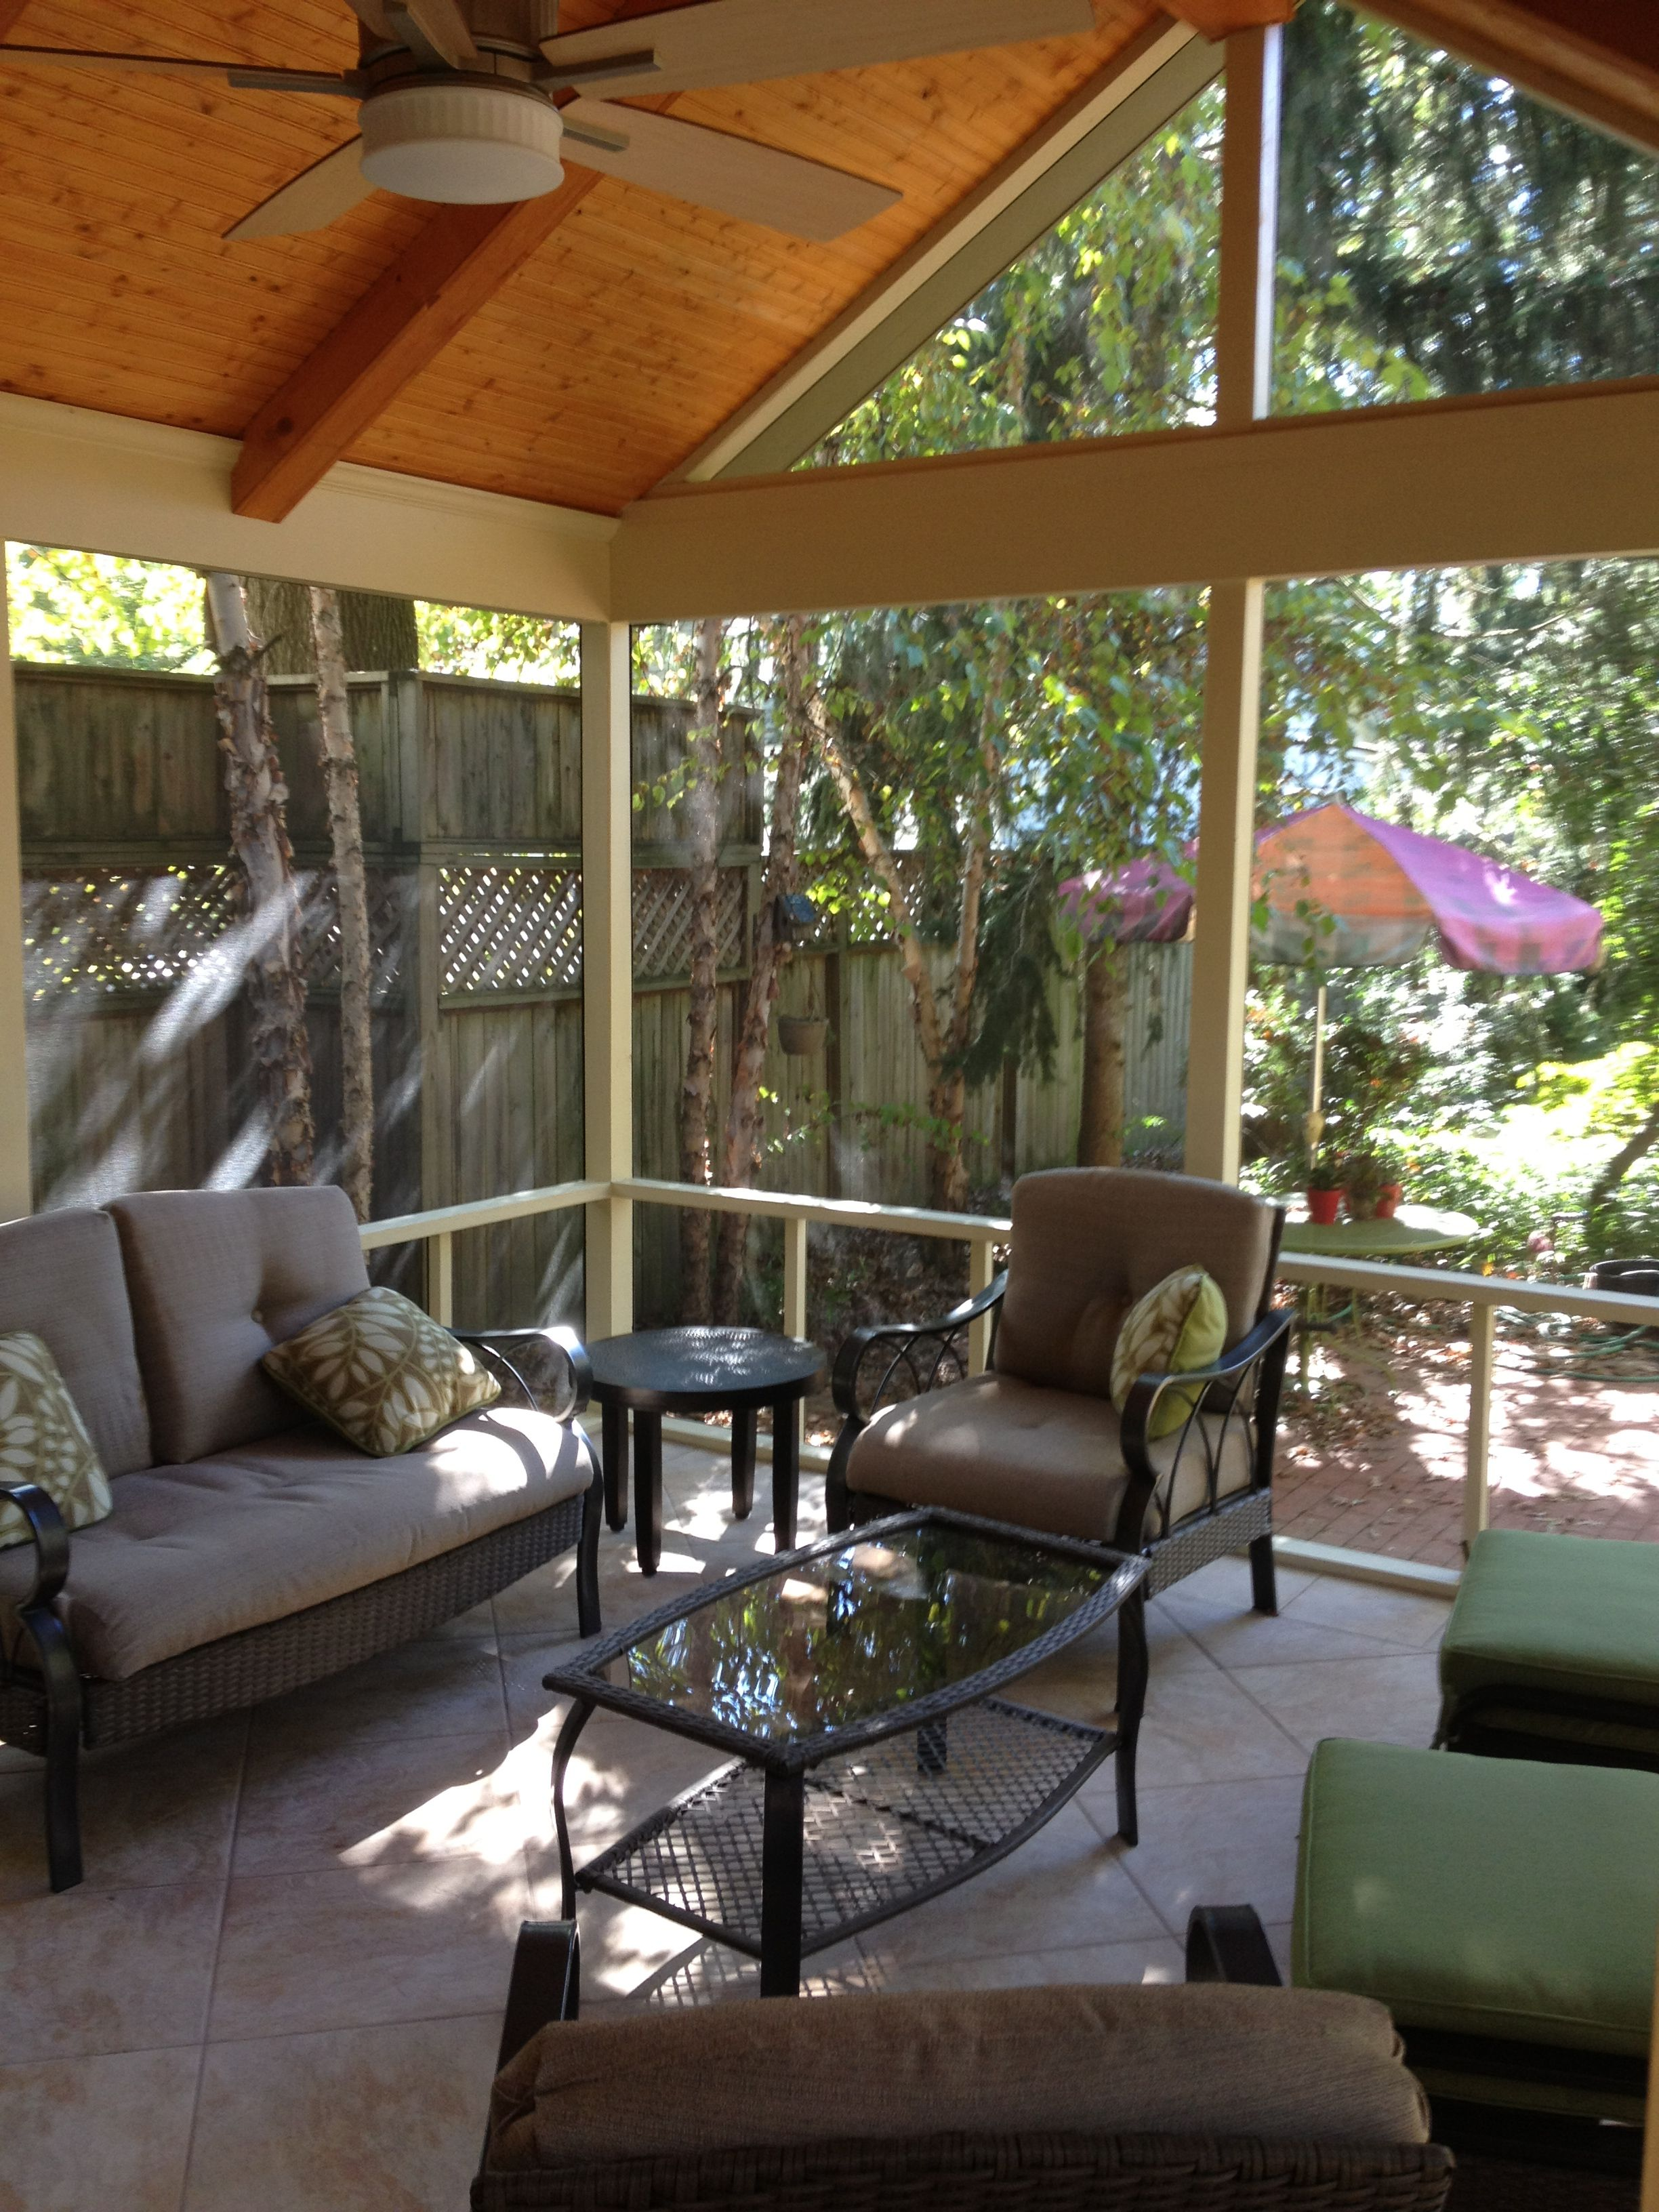 Traditional Screen Porch With Vaulted Ceiling And Screentite Enclosure Screened Porch Beadboard Ceiling Transom Windows